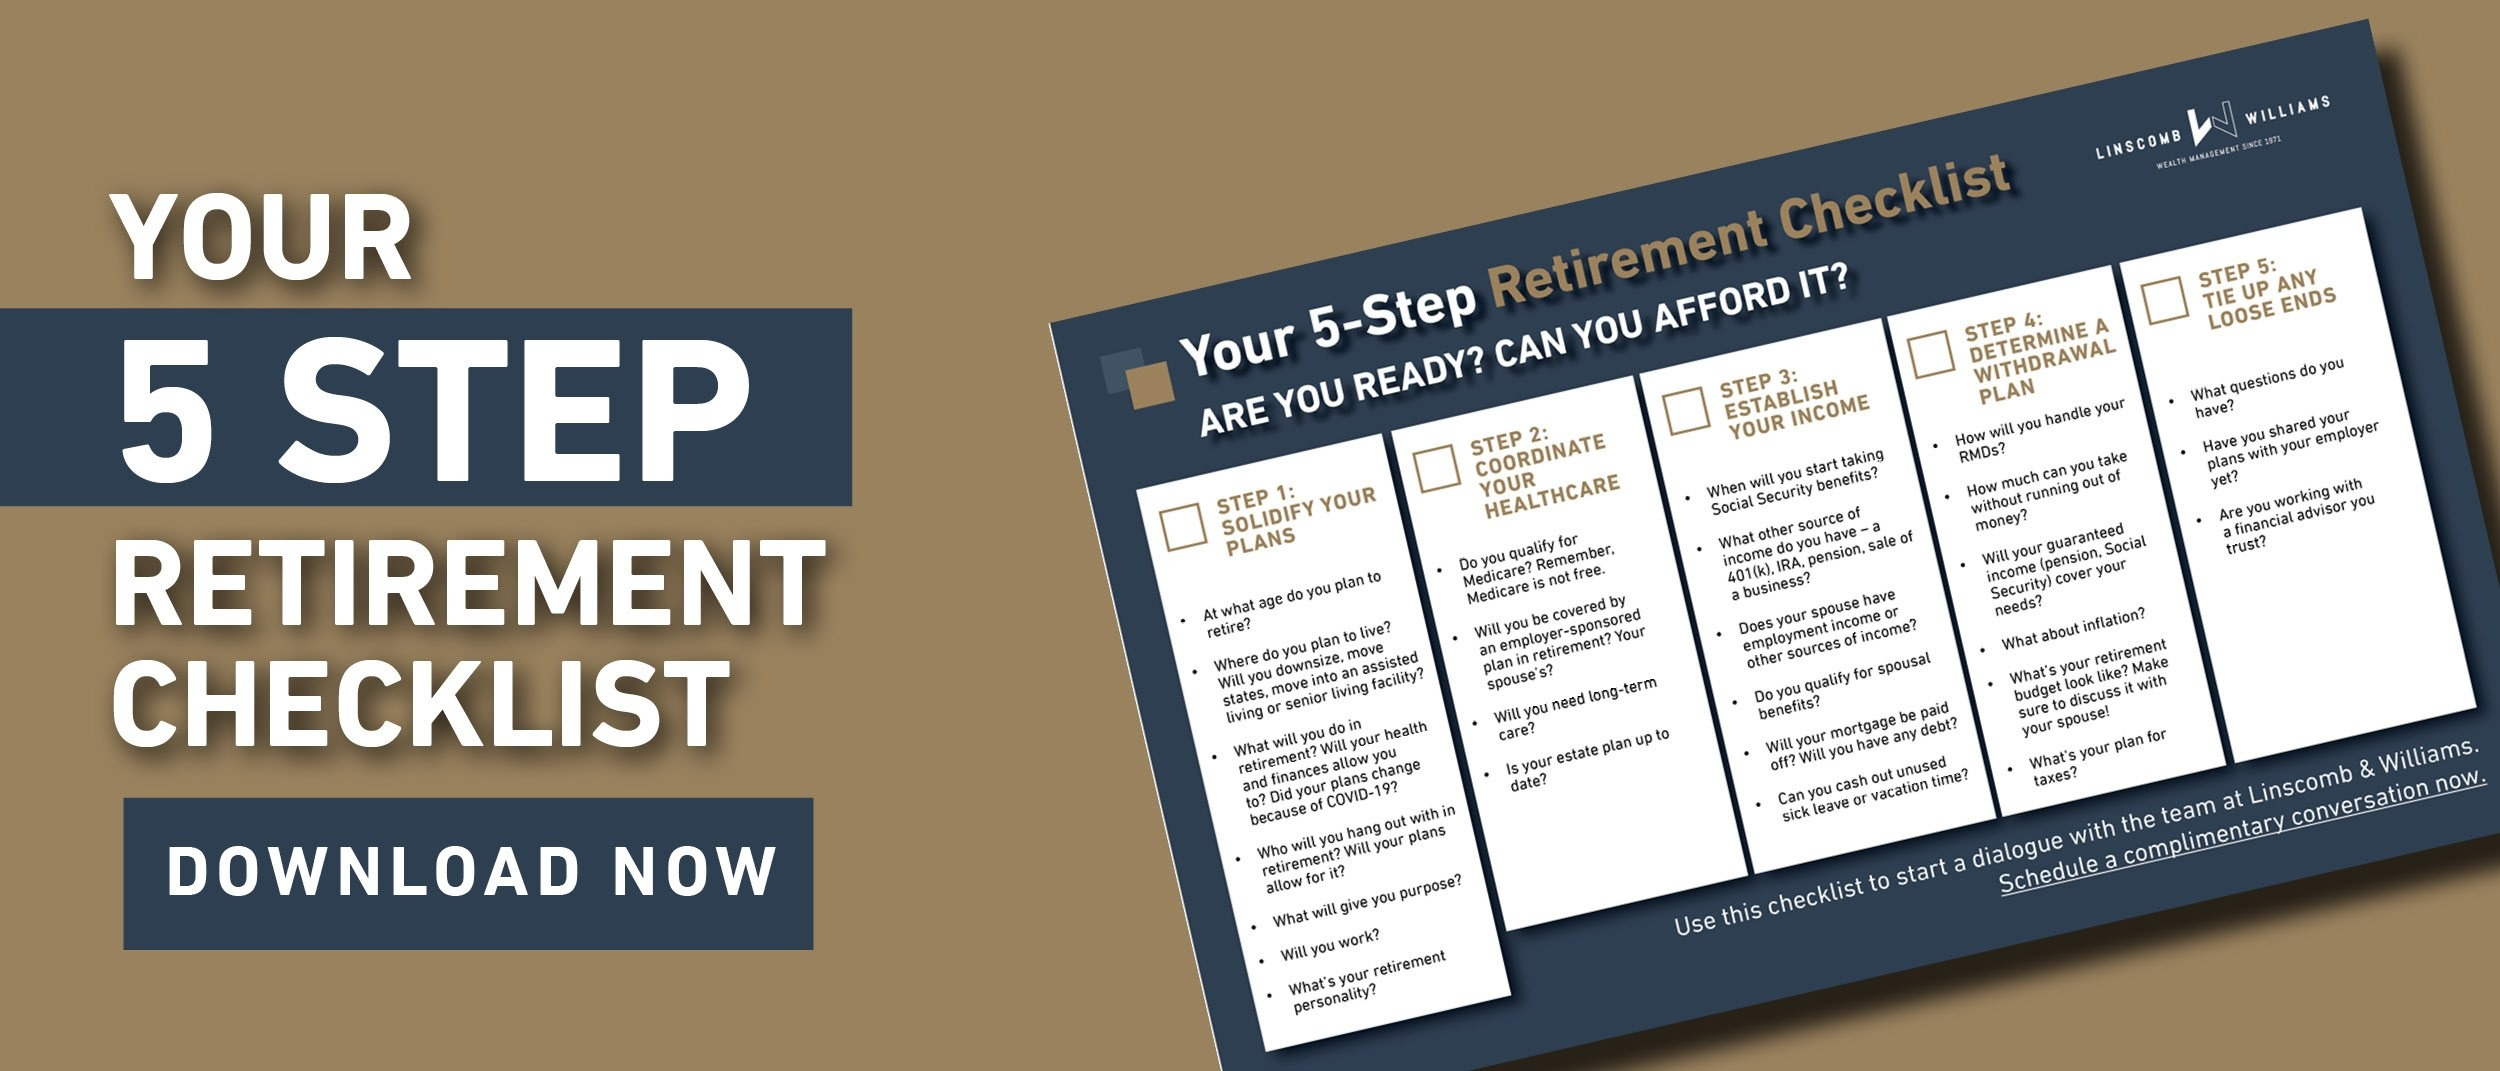 Complimentary Offer: Your 5-Step Retirement Checklist